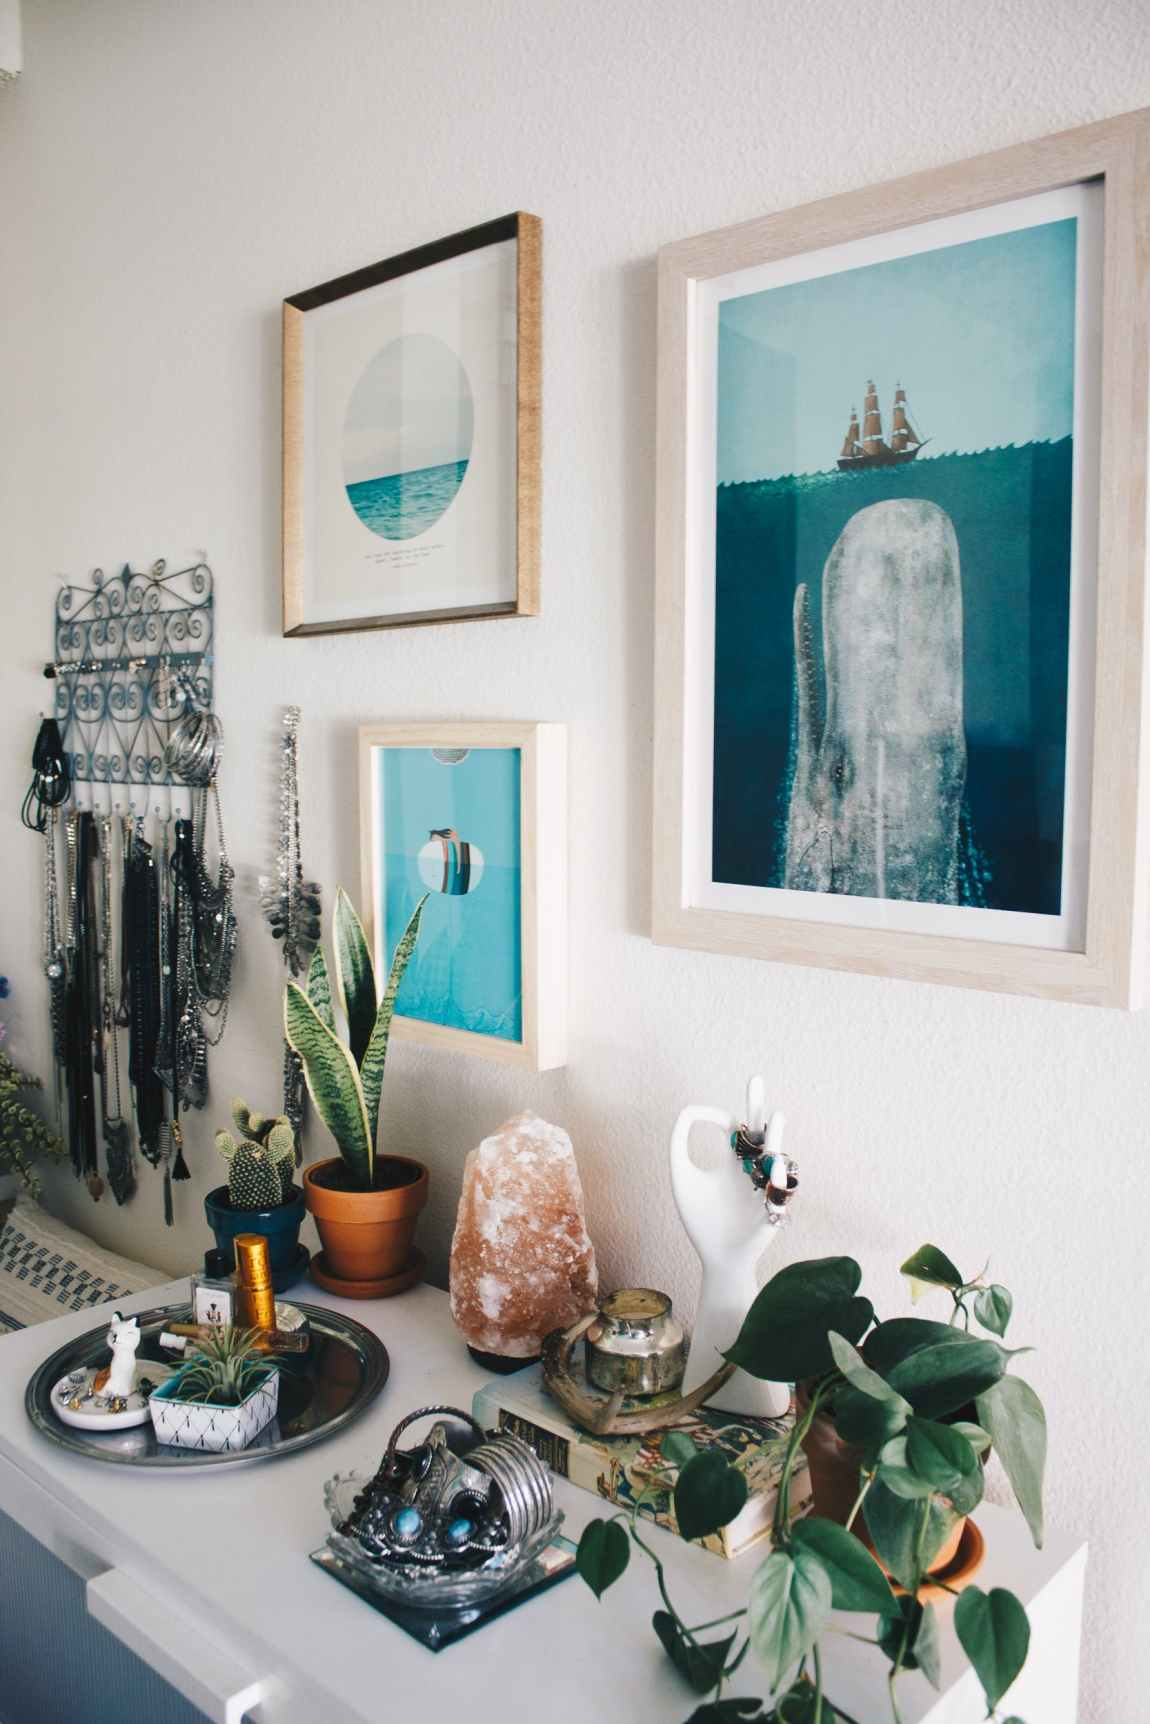 Getting boho right can be so hard, since Boho can be a code word for clutter. This vignette shows how to do it right, blending interesting objects, vibrant color, and beautiful prints.